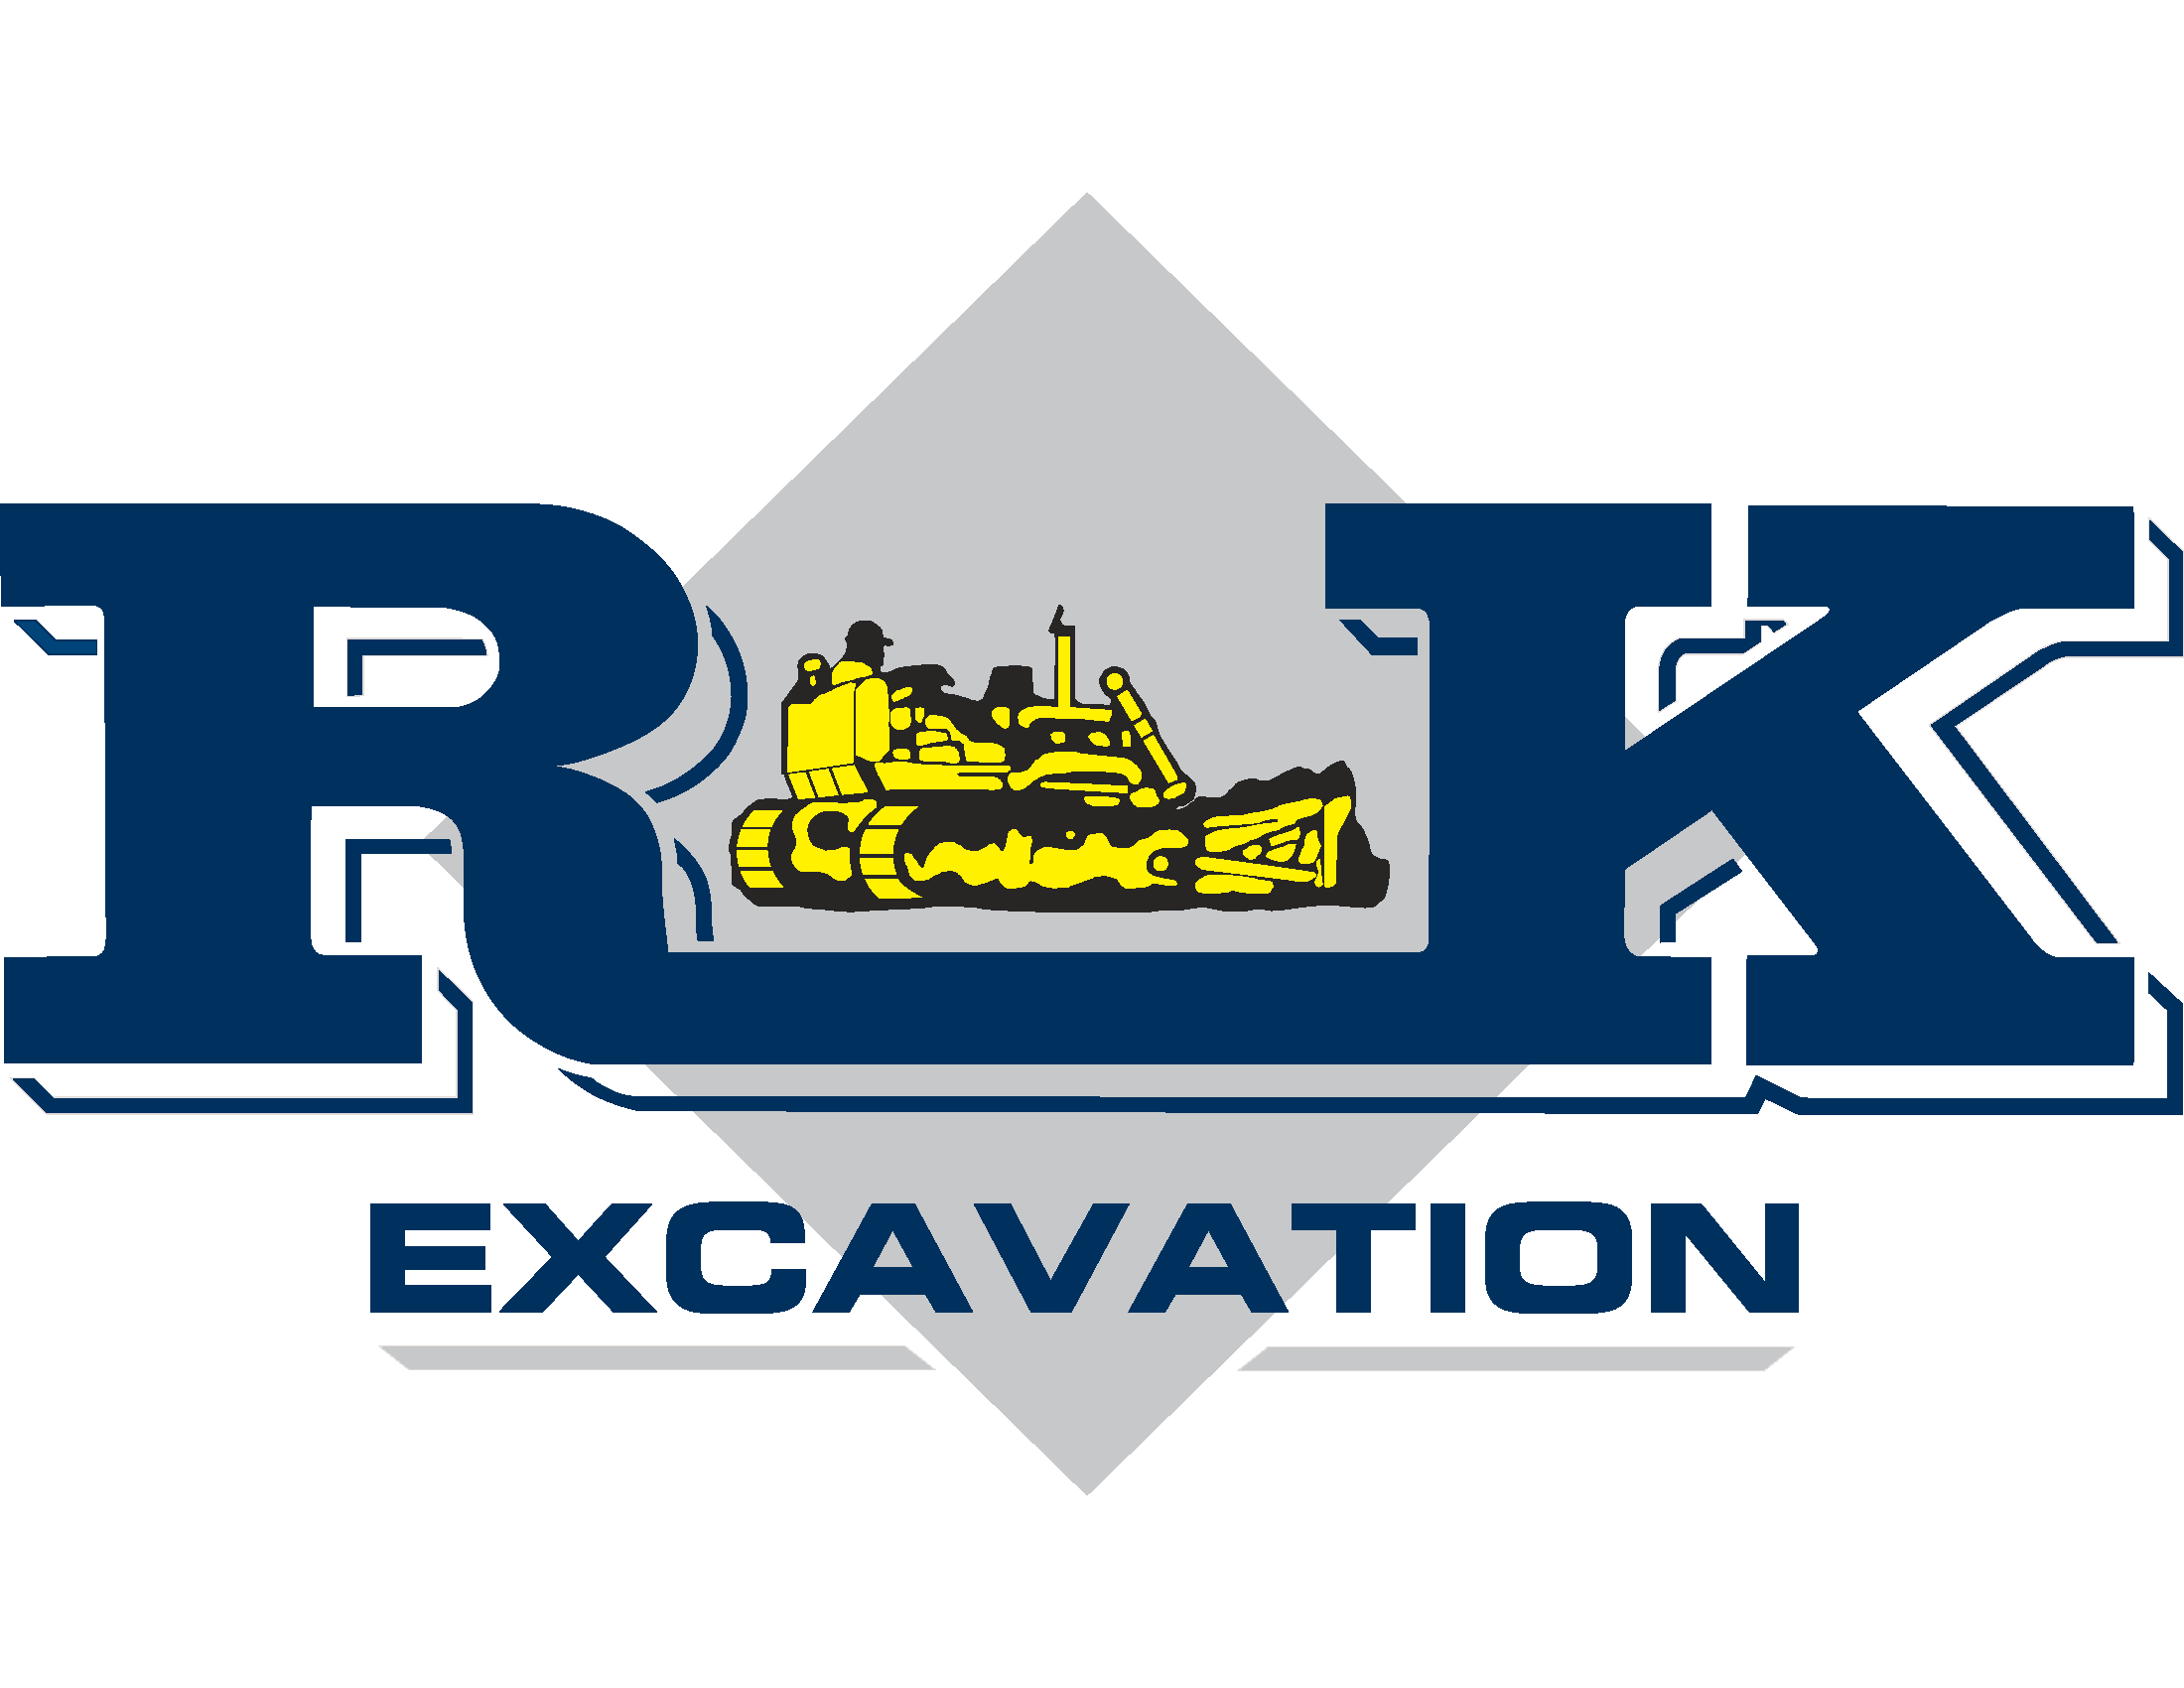 R&K Excavation